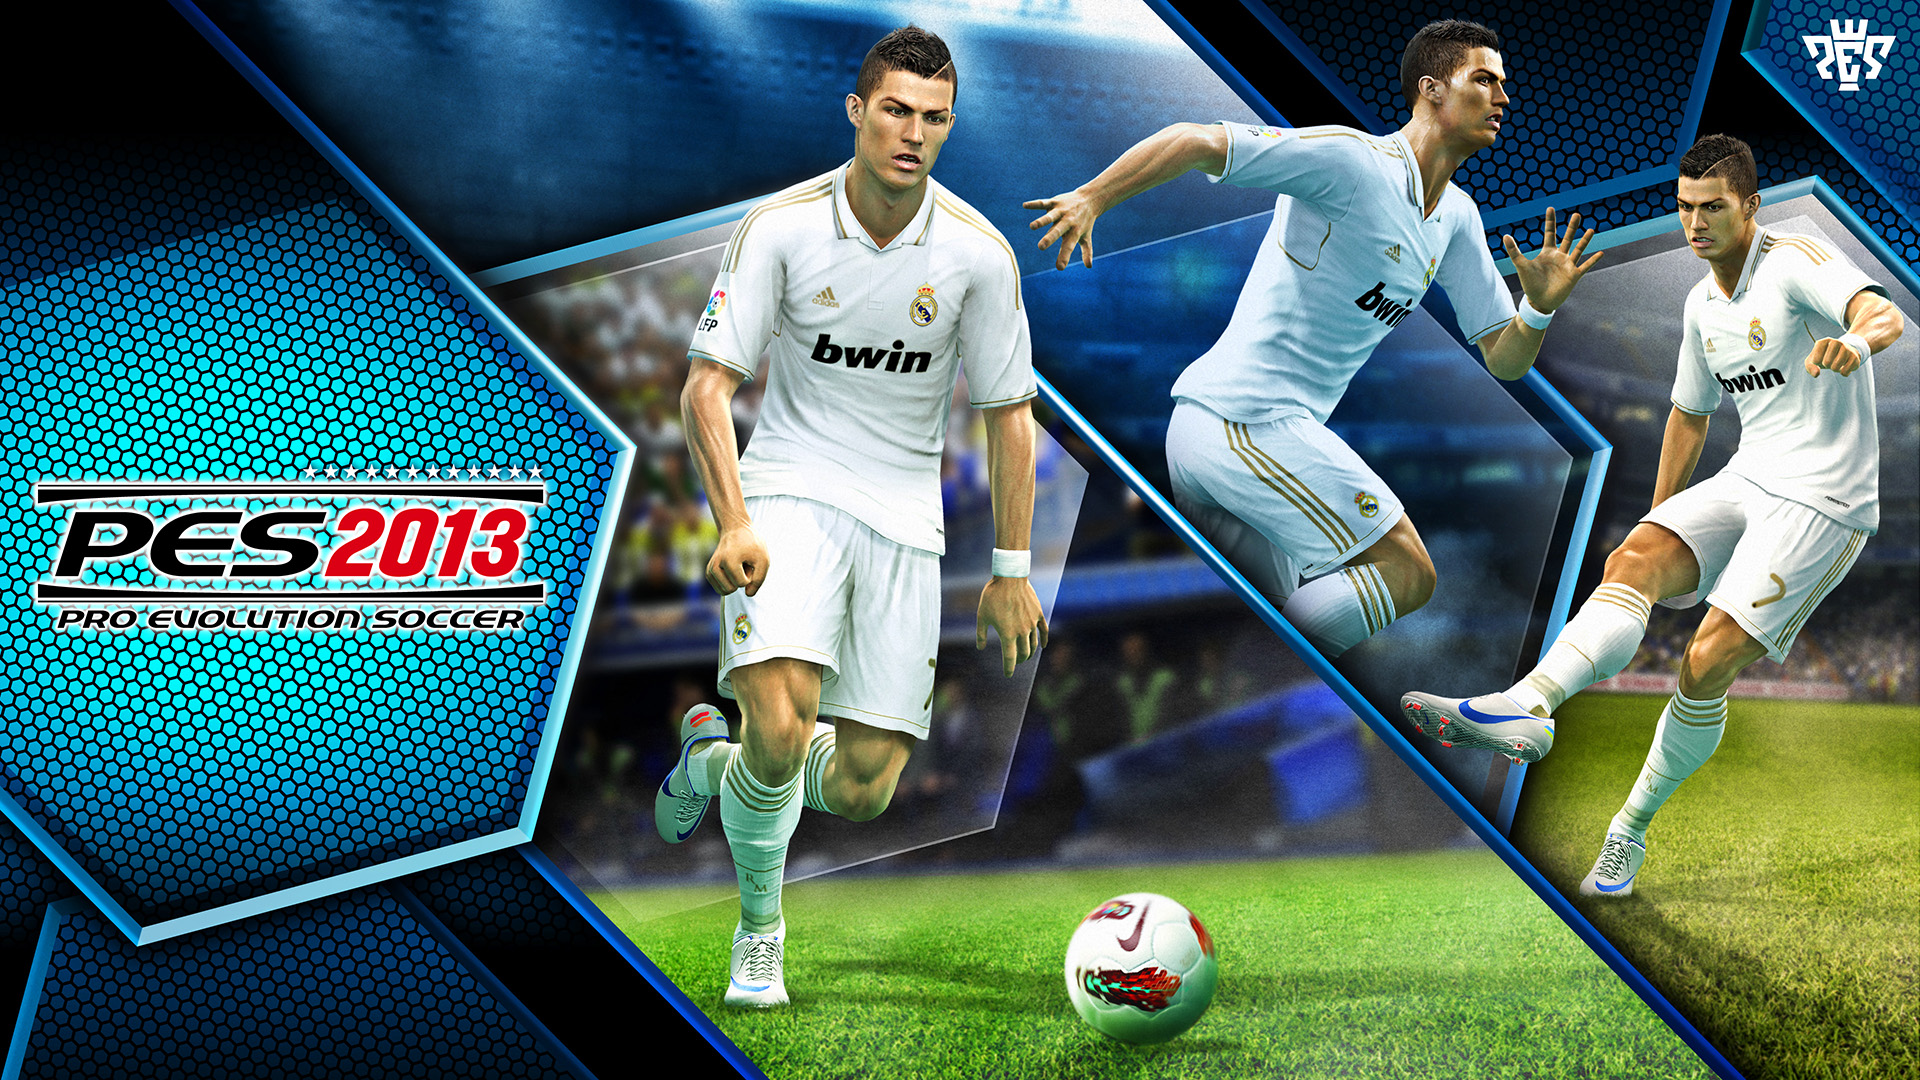 PES 2013 coming to 3DS and PSP... but not PS Vita